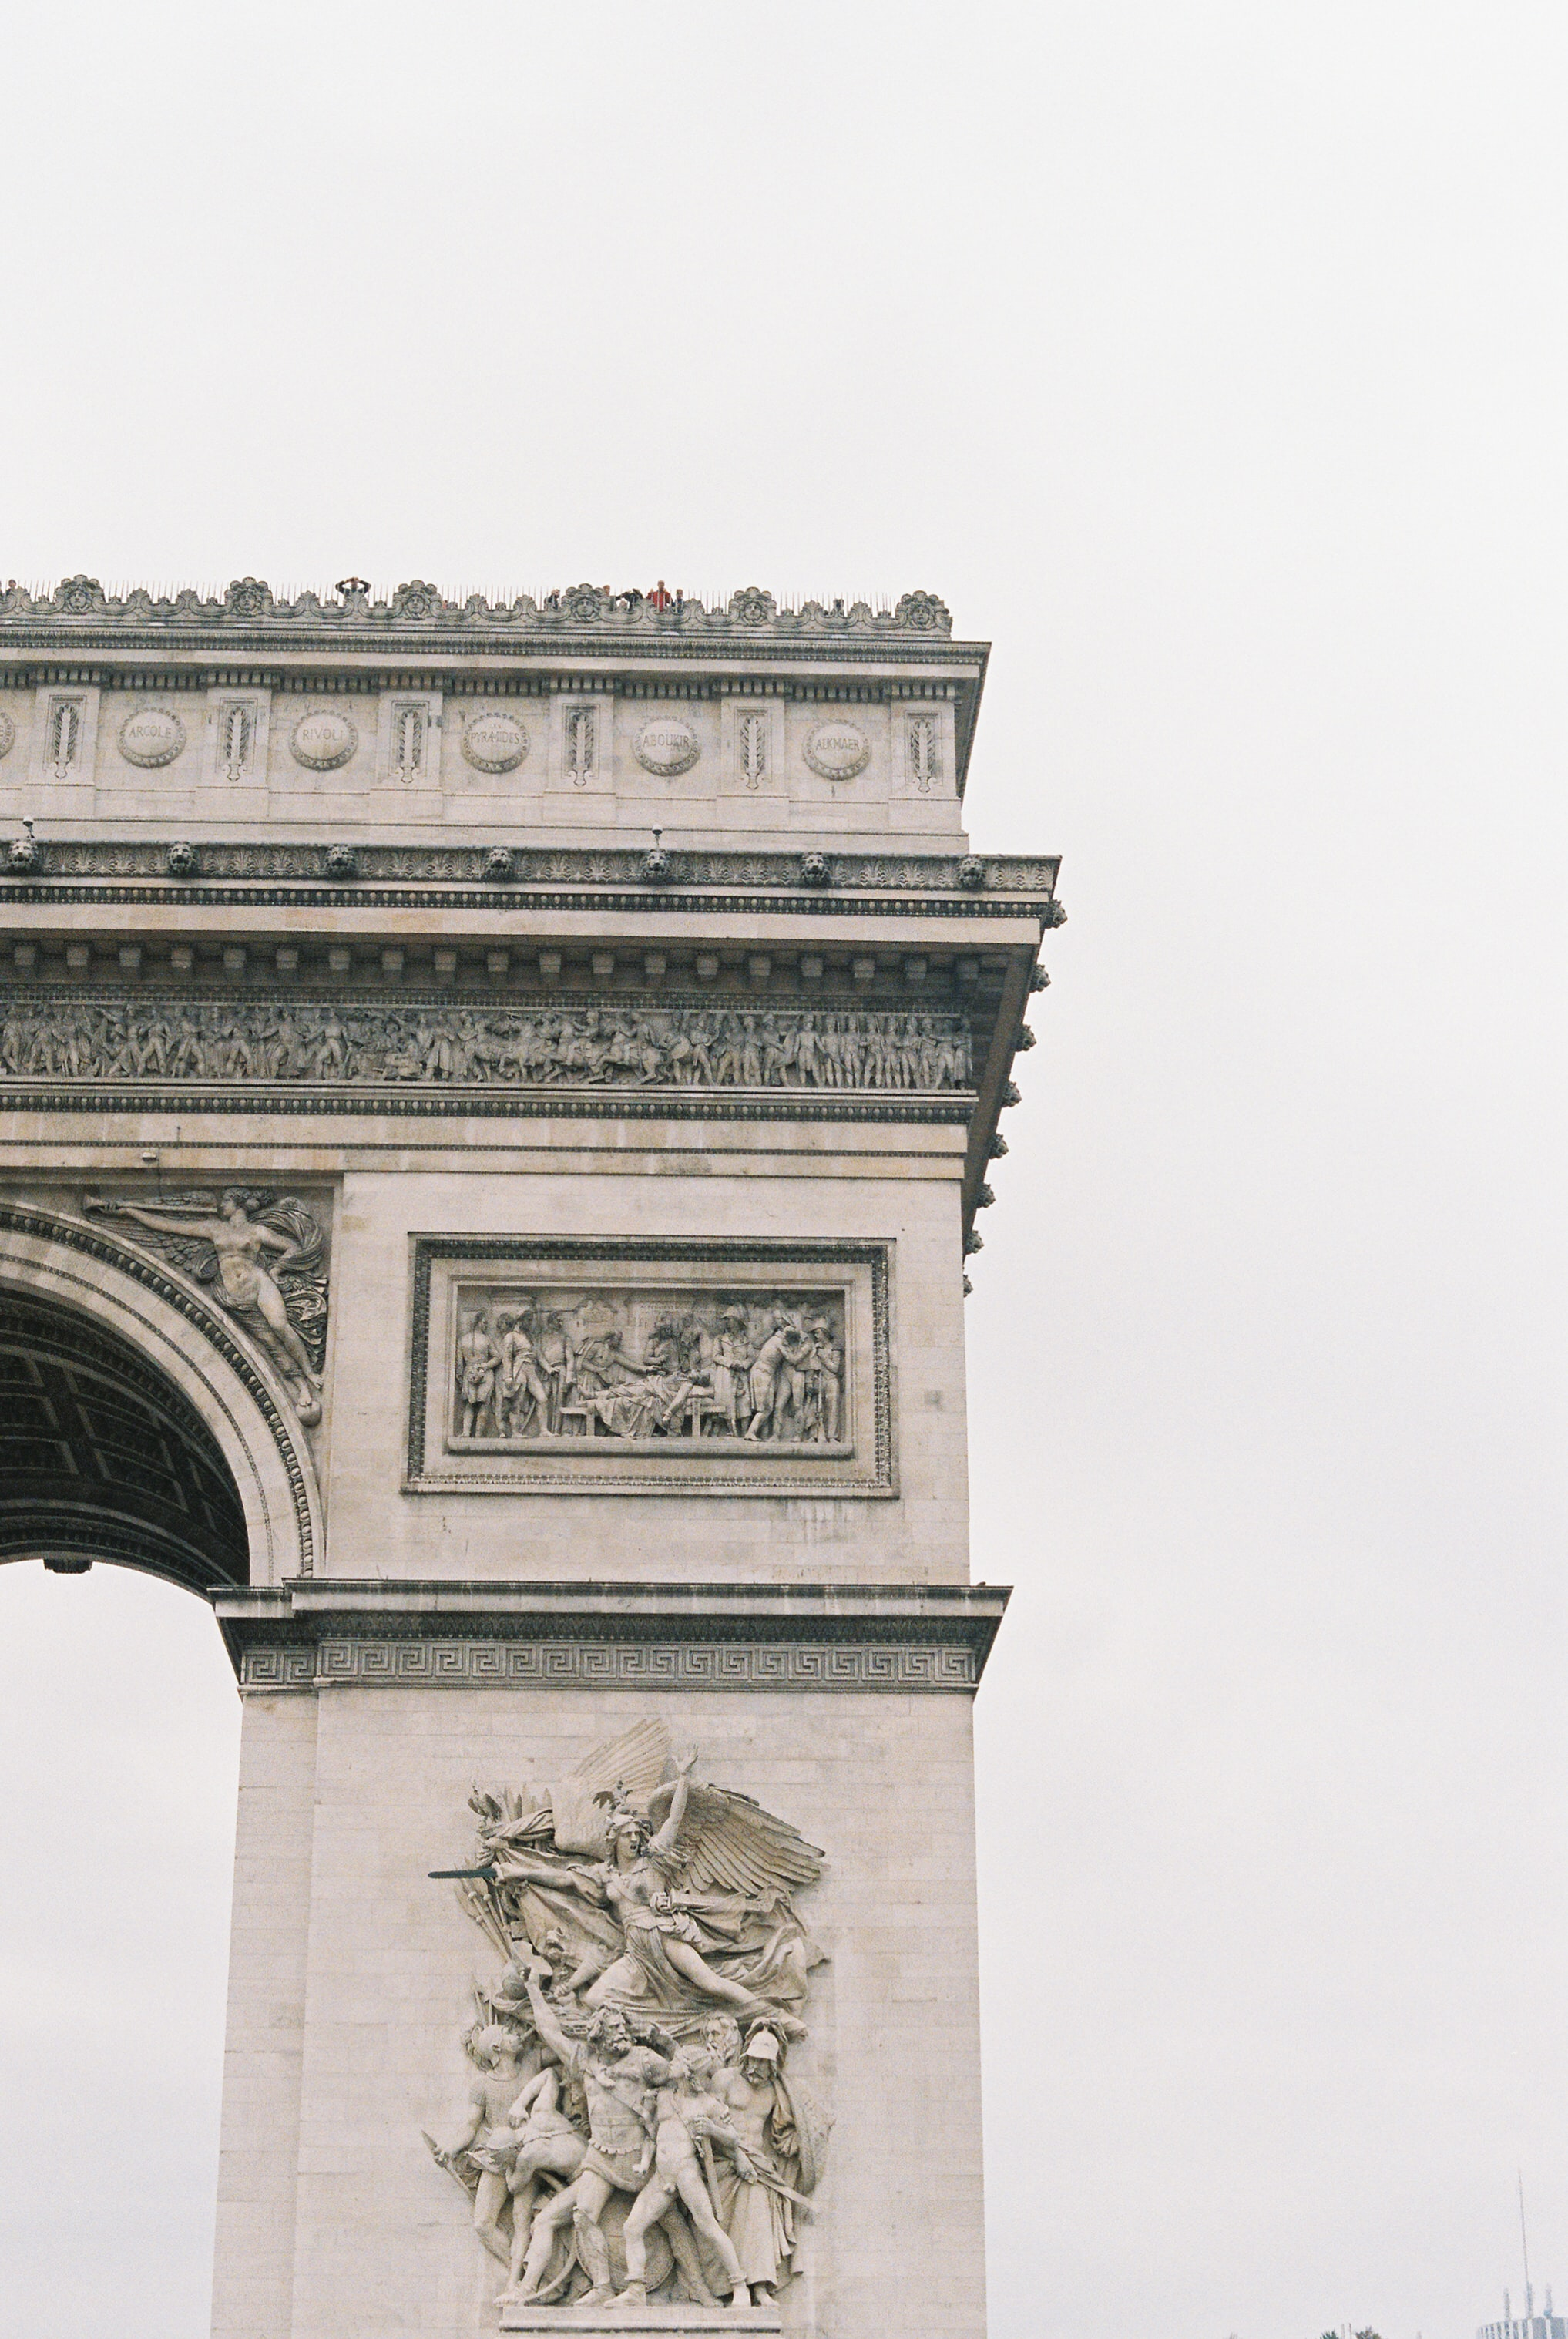 The stone archway of the Arc De Triomphe in Paris, France with memorial statues.